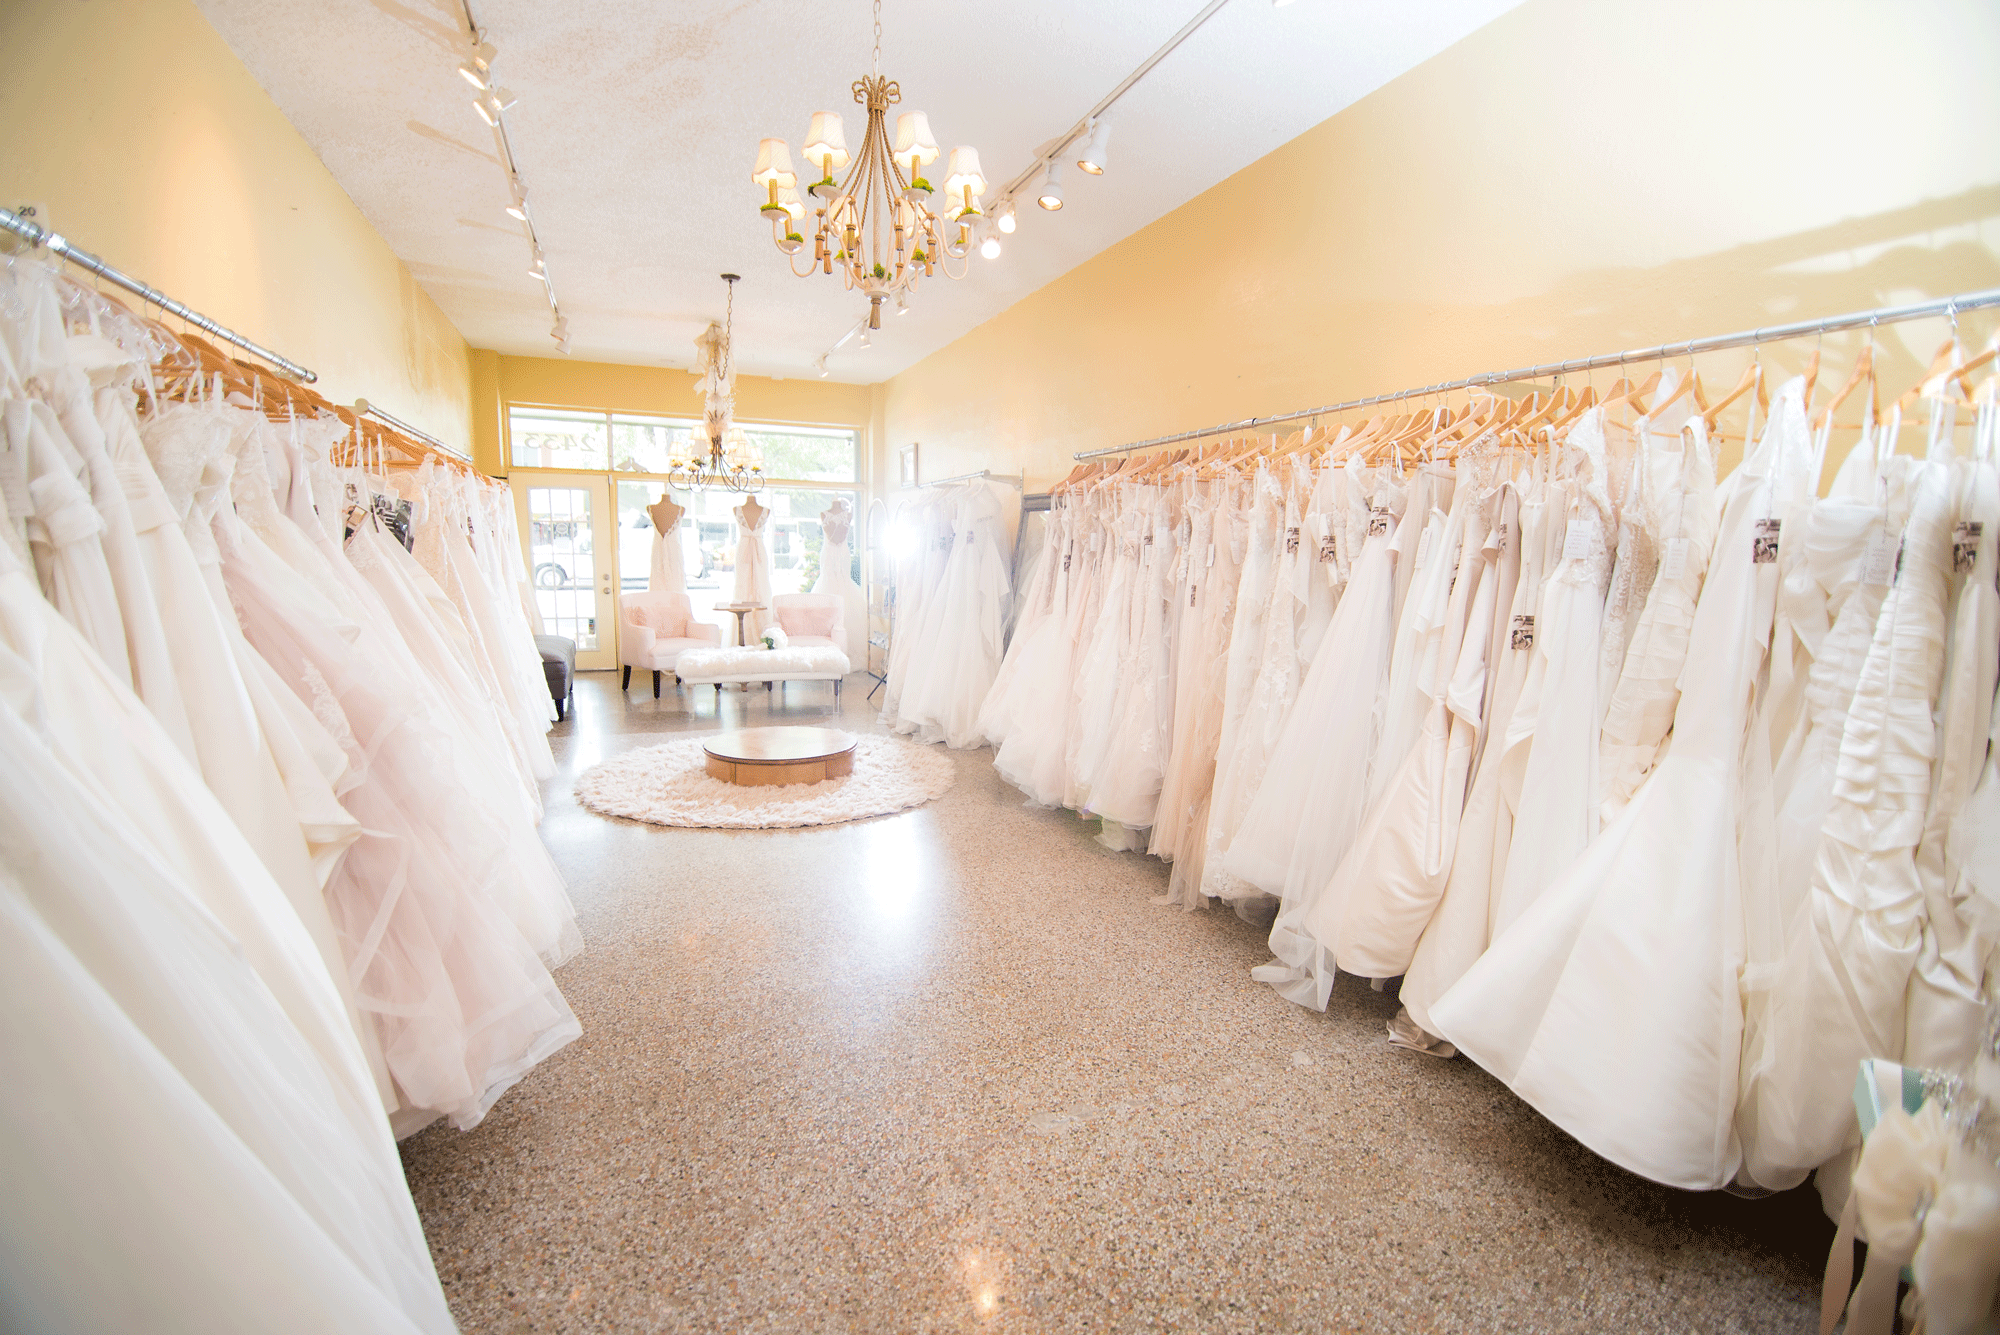 The Dressing Room – Wedding Dresses in St. Petersburg, Florida